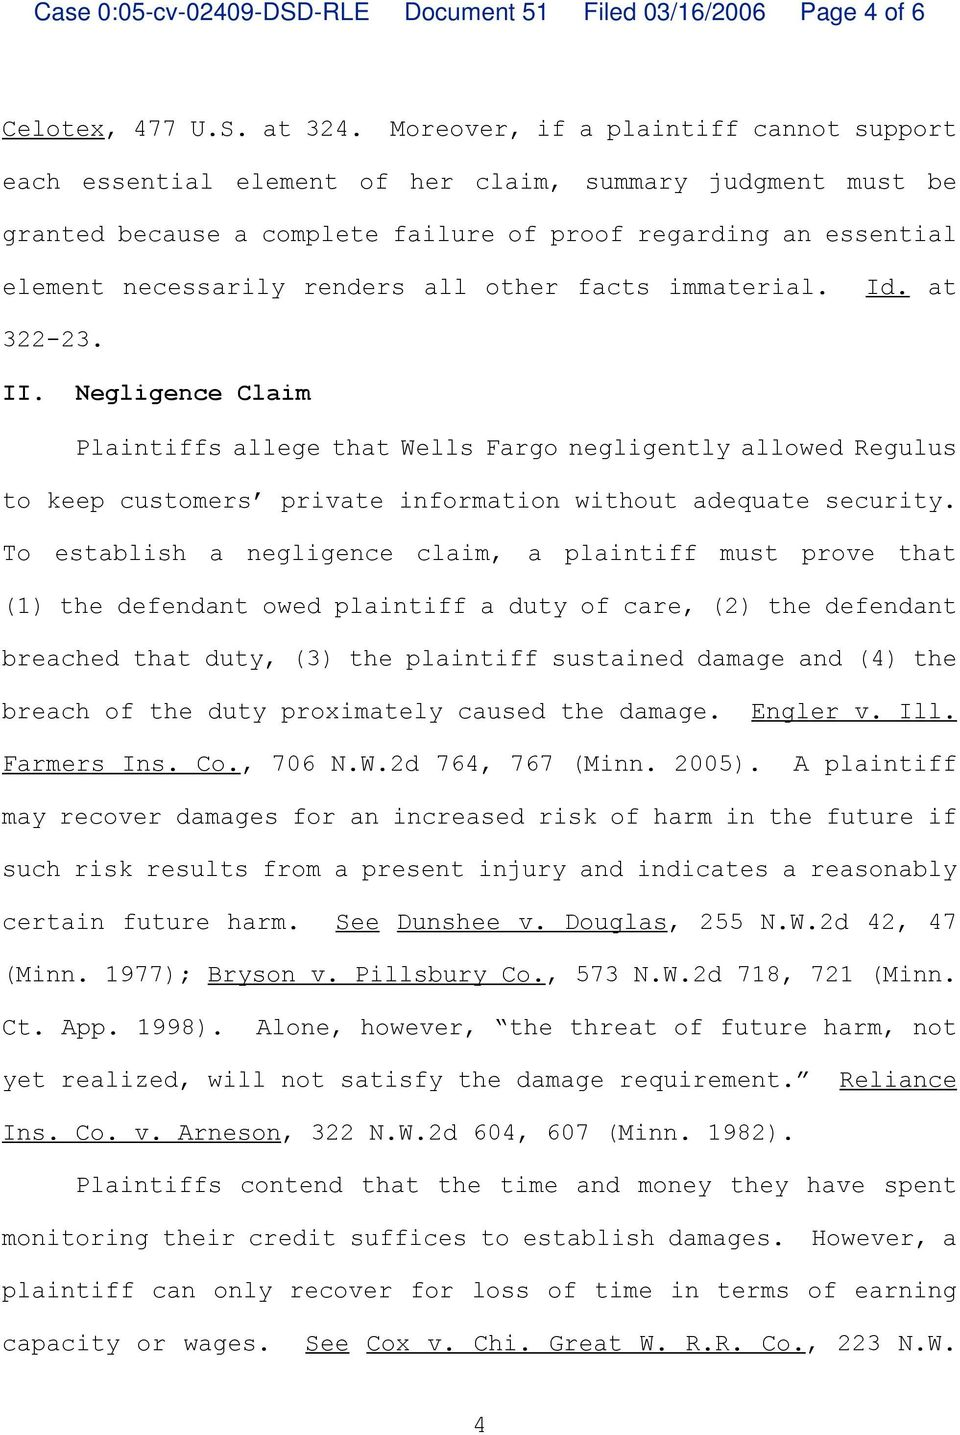 all other facts immaterial. Id. at 322-23. II. Negligence Claim Plaintiffs allege that Wells Fargo negligently allowed Regulus to keep customers private information without adequate security.